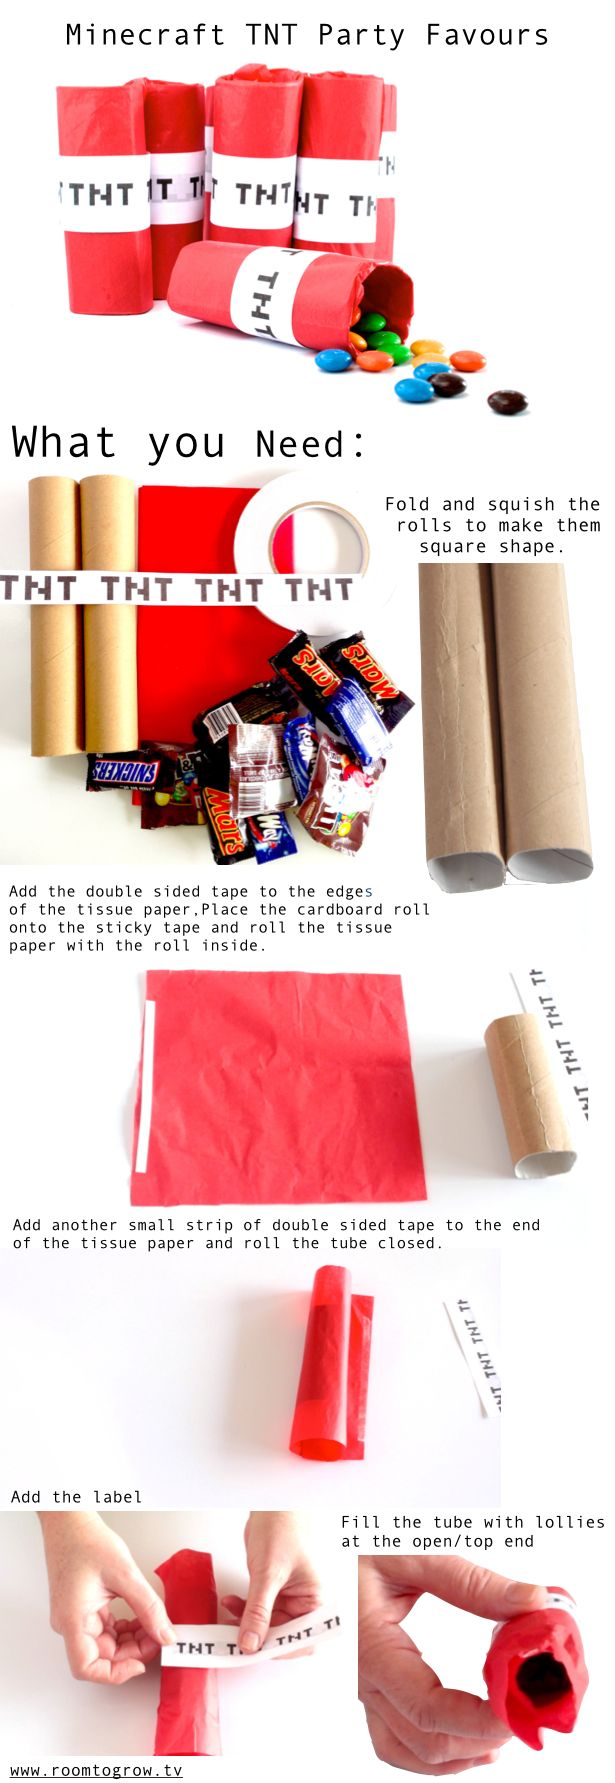 DIY Minecraft TNT Party Favors with paper towel rolls and red tissue paper